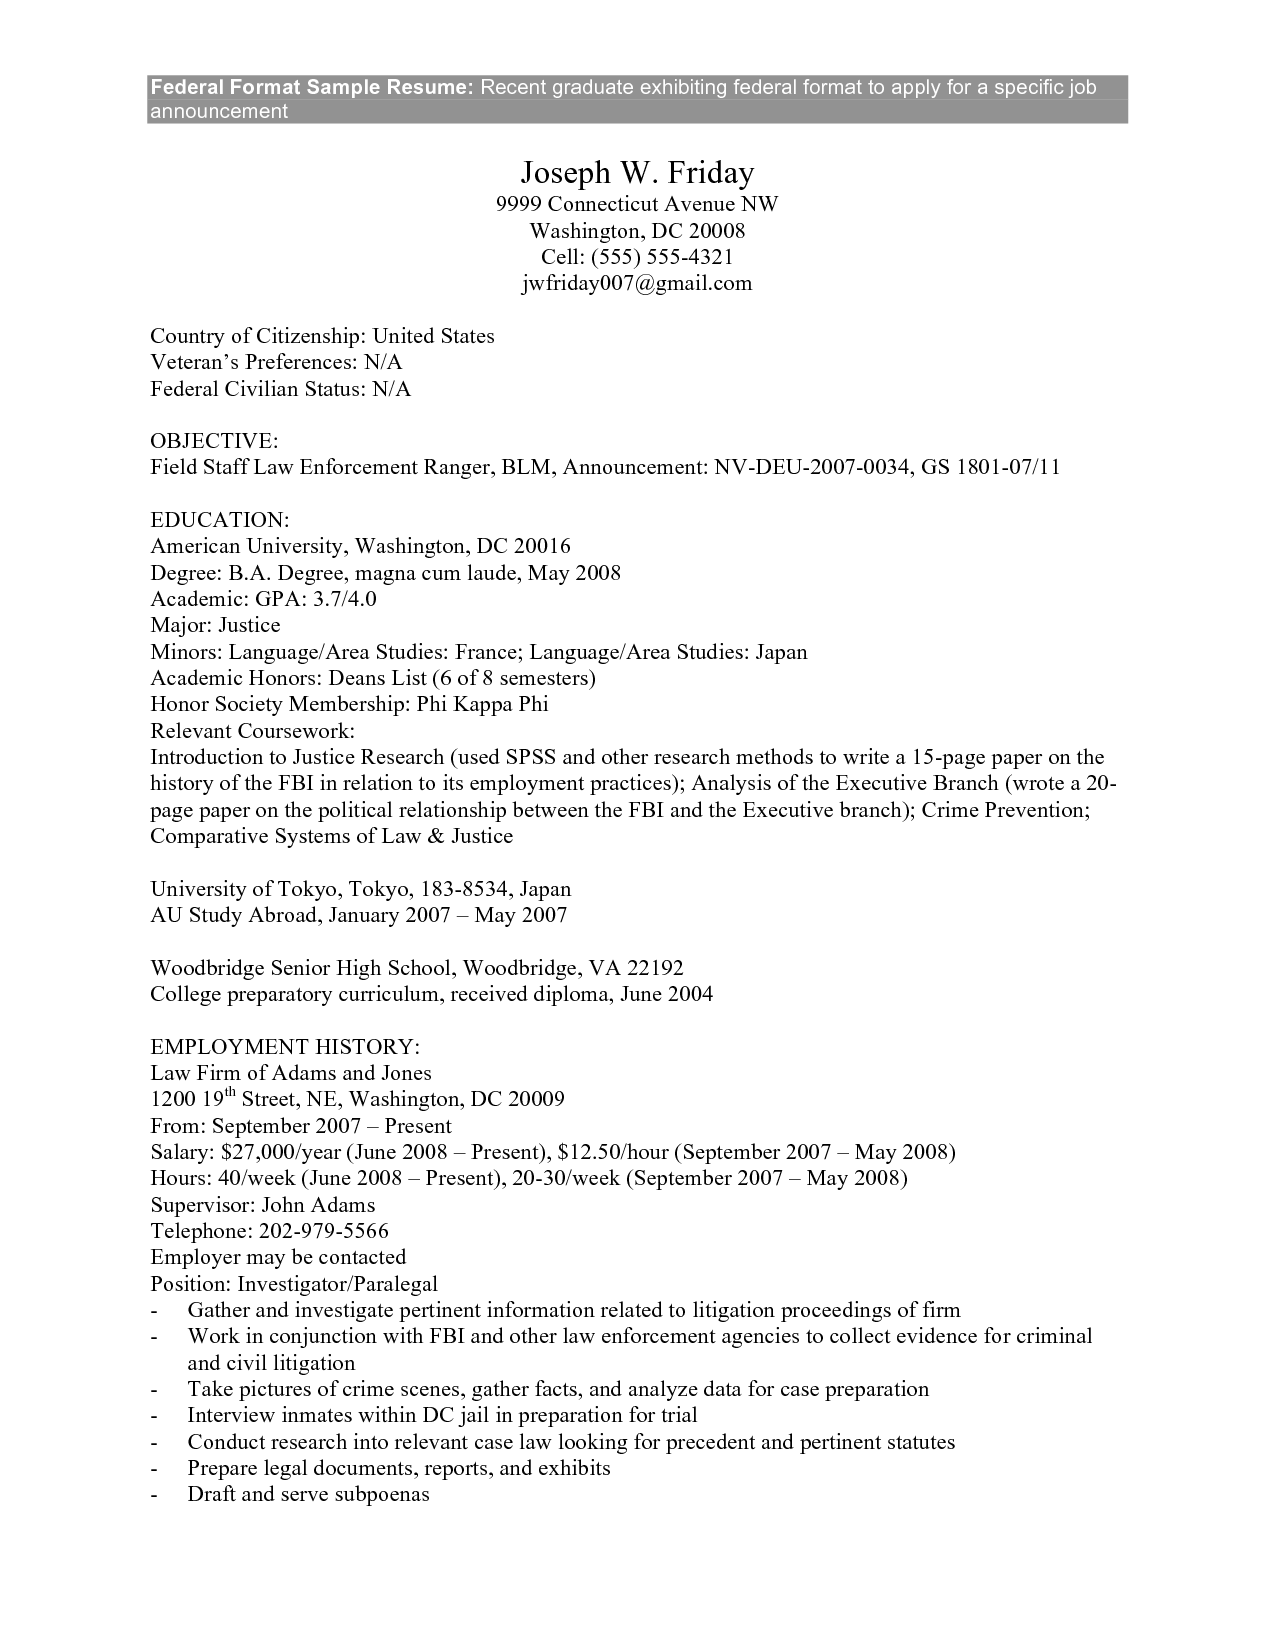 Free Resume Templates For Government Jobs 3 Free Resume Templates